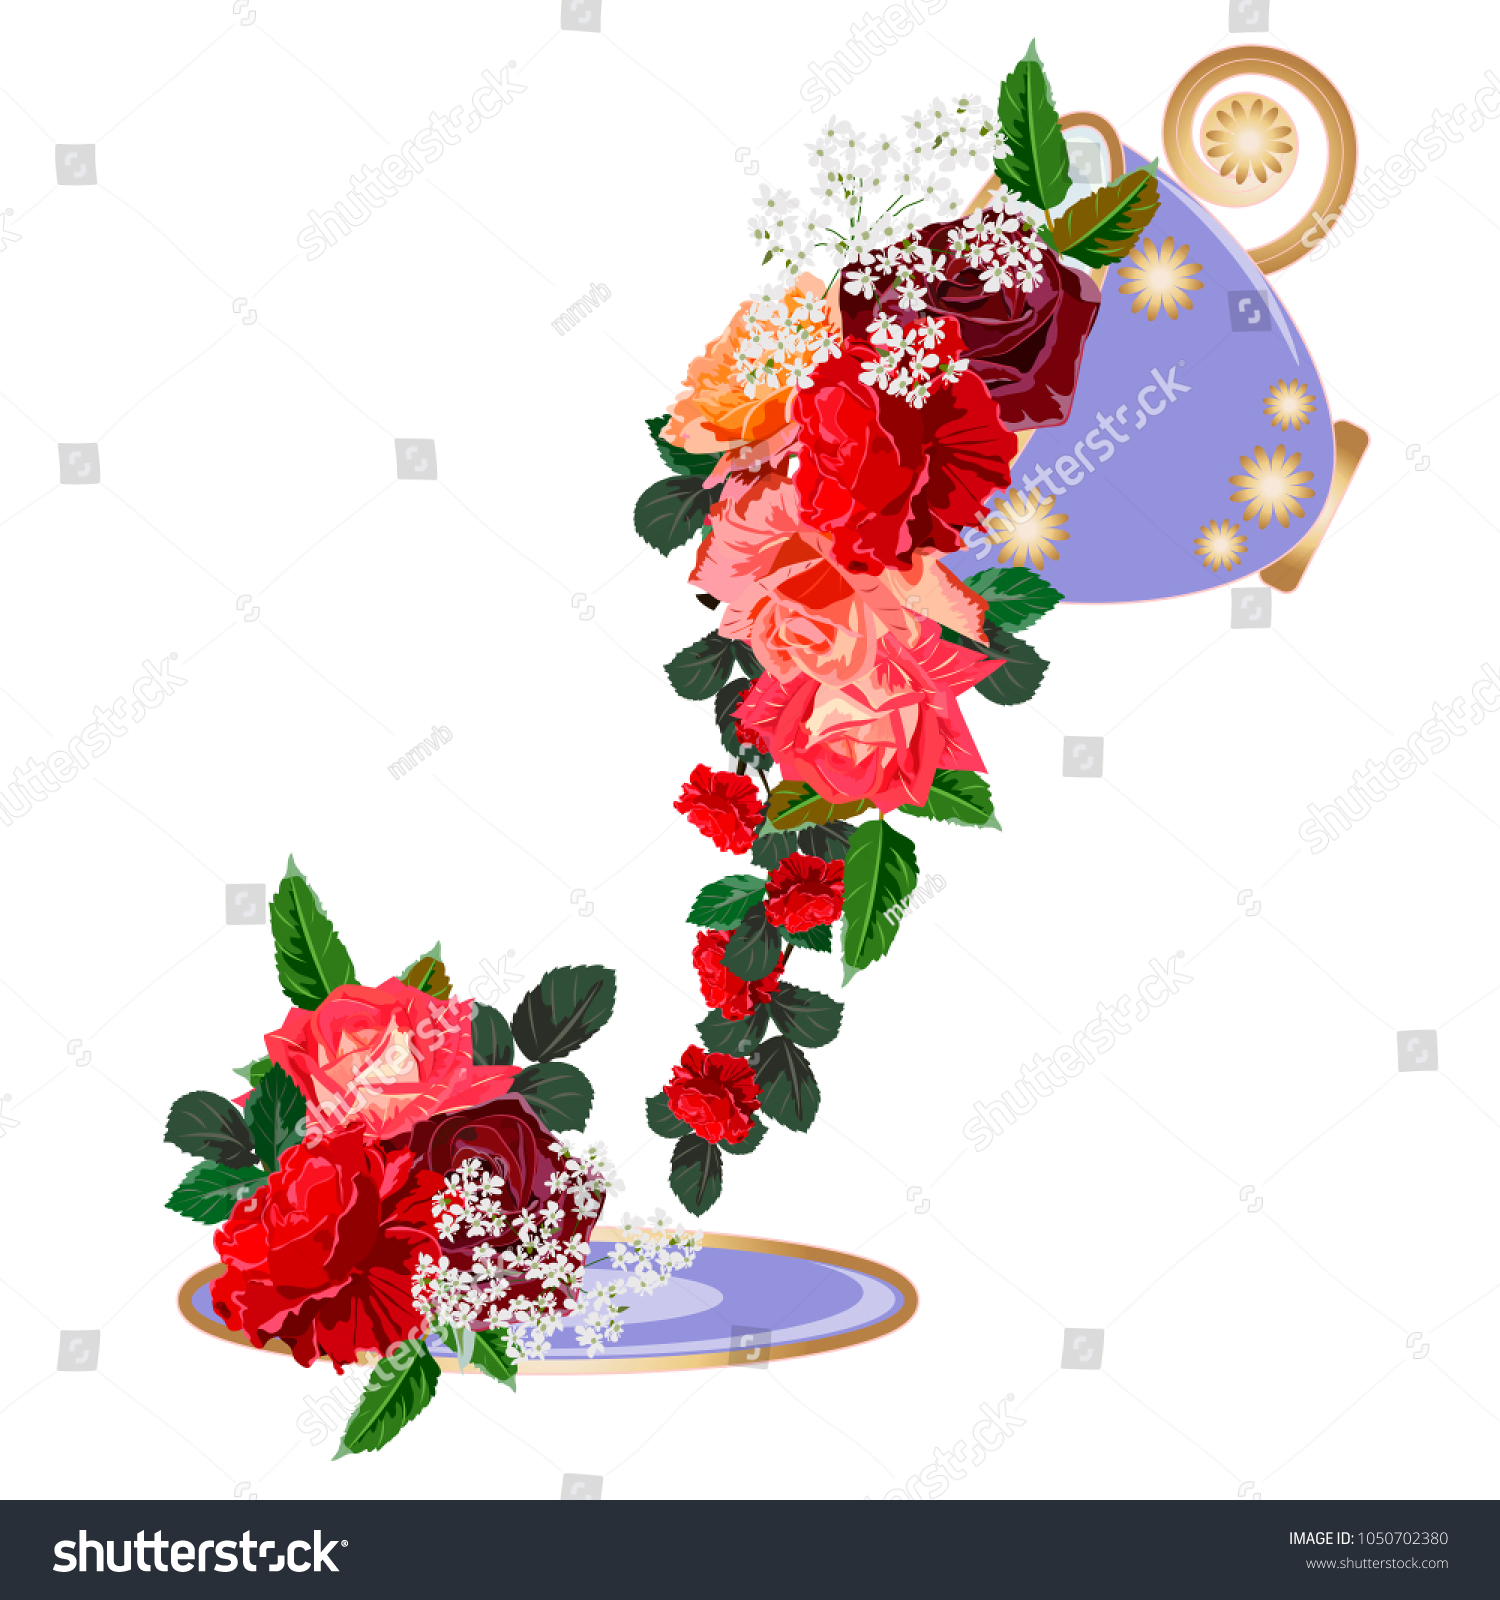 Bouquet Red Roses Purple Cup Decor Stock Vector HD (Royalty Free ...